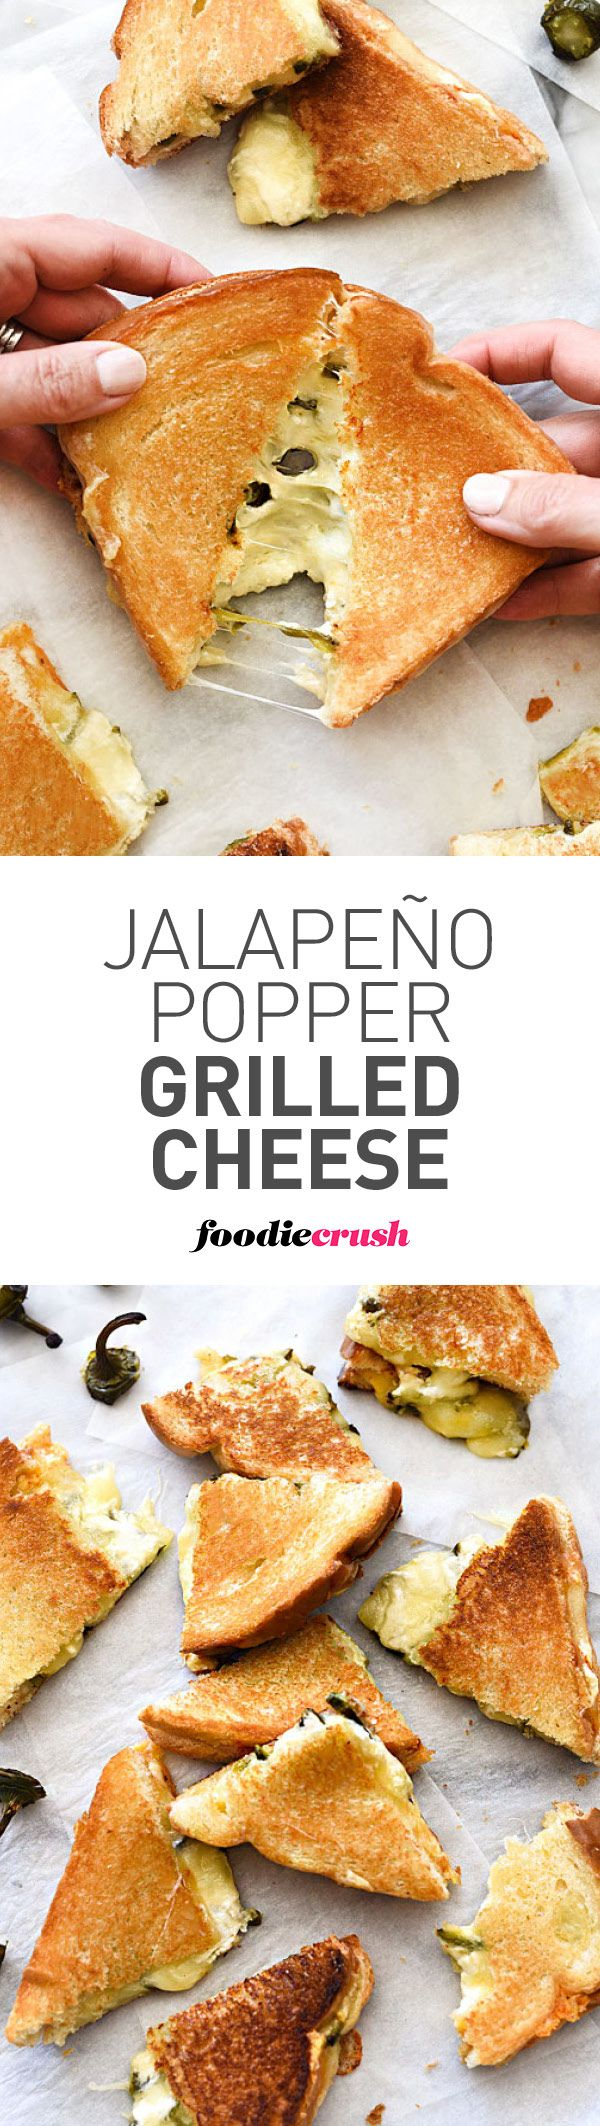 This grilled cheese is like everyone's favorite jalapeño poppers melted between two slices of bread for the ultimate grilled cheese sandwich | foodiecrush.com #sandwich #grilledcheese